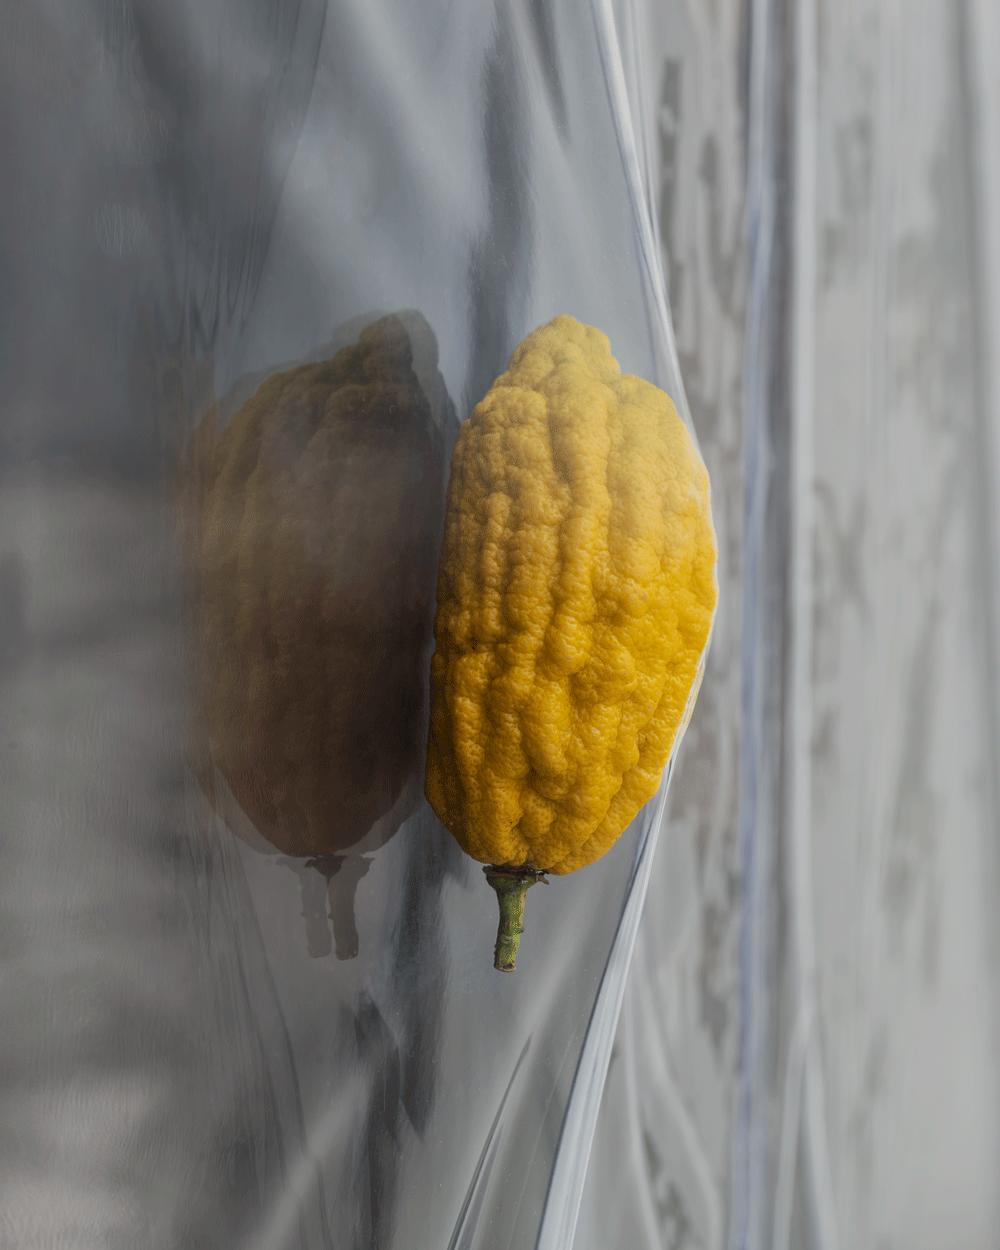 Amitai Romm, Keeper (2019) Citron fruit, plastic, vacuum pump, tubes and fittings. Installation view, Macula Lutea, VEDA, Florence (2019). Photograph by Flavio Pescatori.